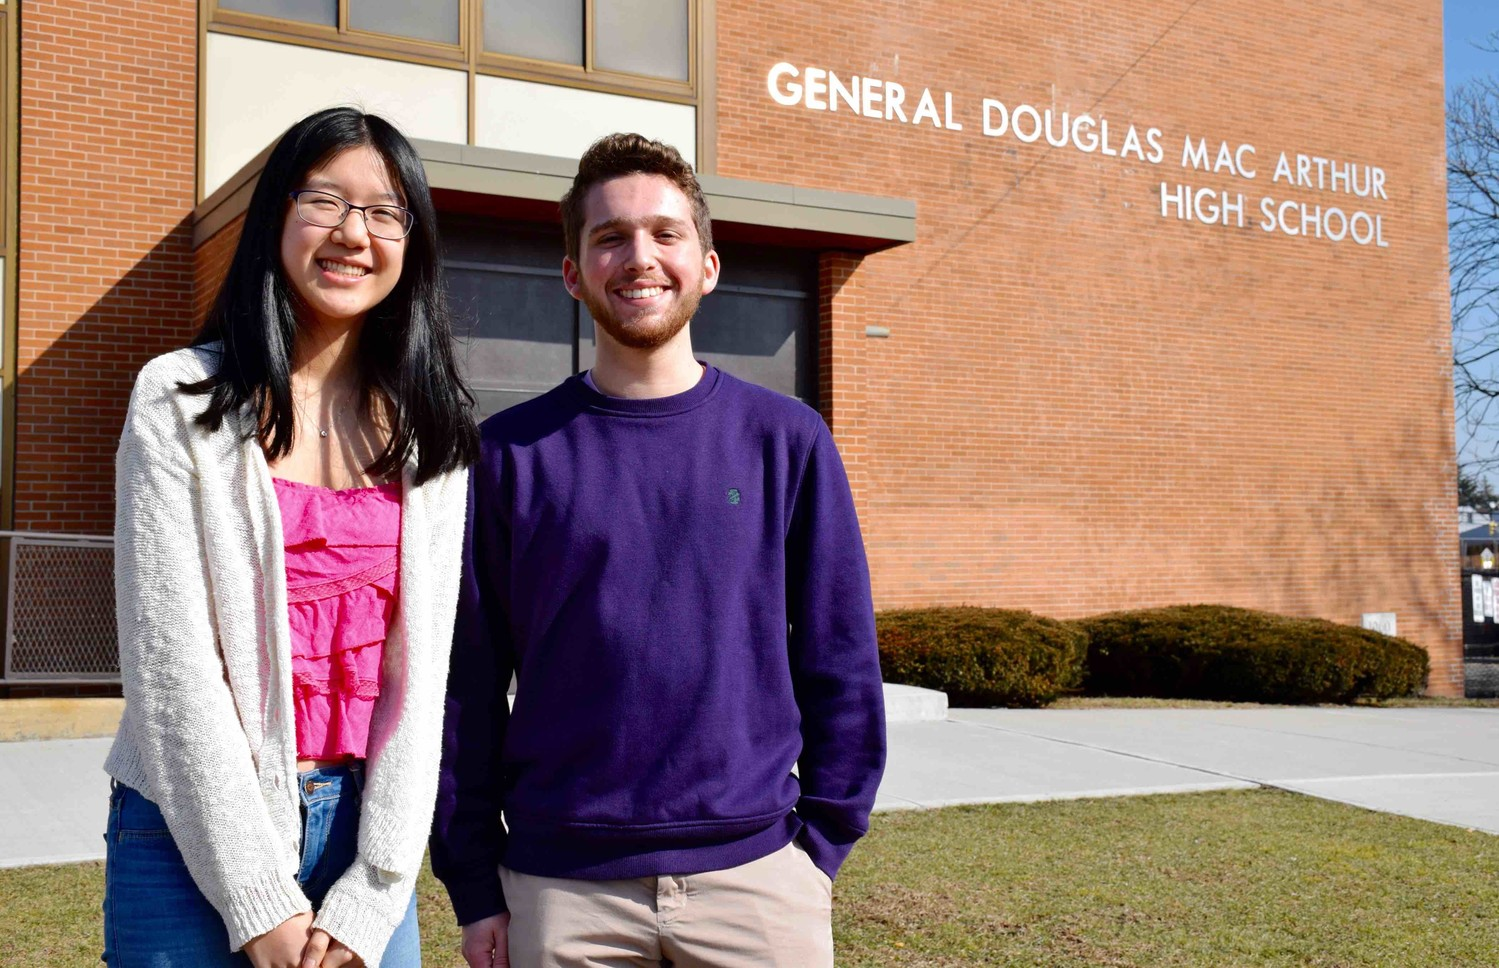 General Douglas MacArthur High School seniors Helen Zhang (left) and Jared Schwartz (right) were recognized as finalists in the National Merit Scholarship Program.